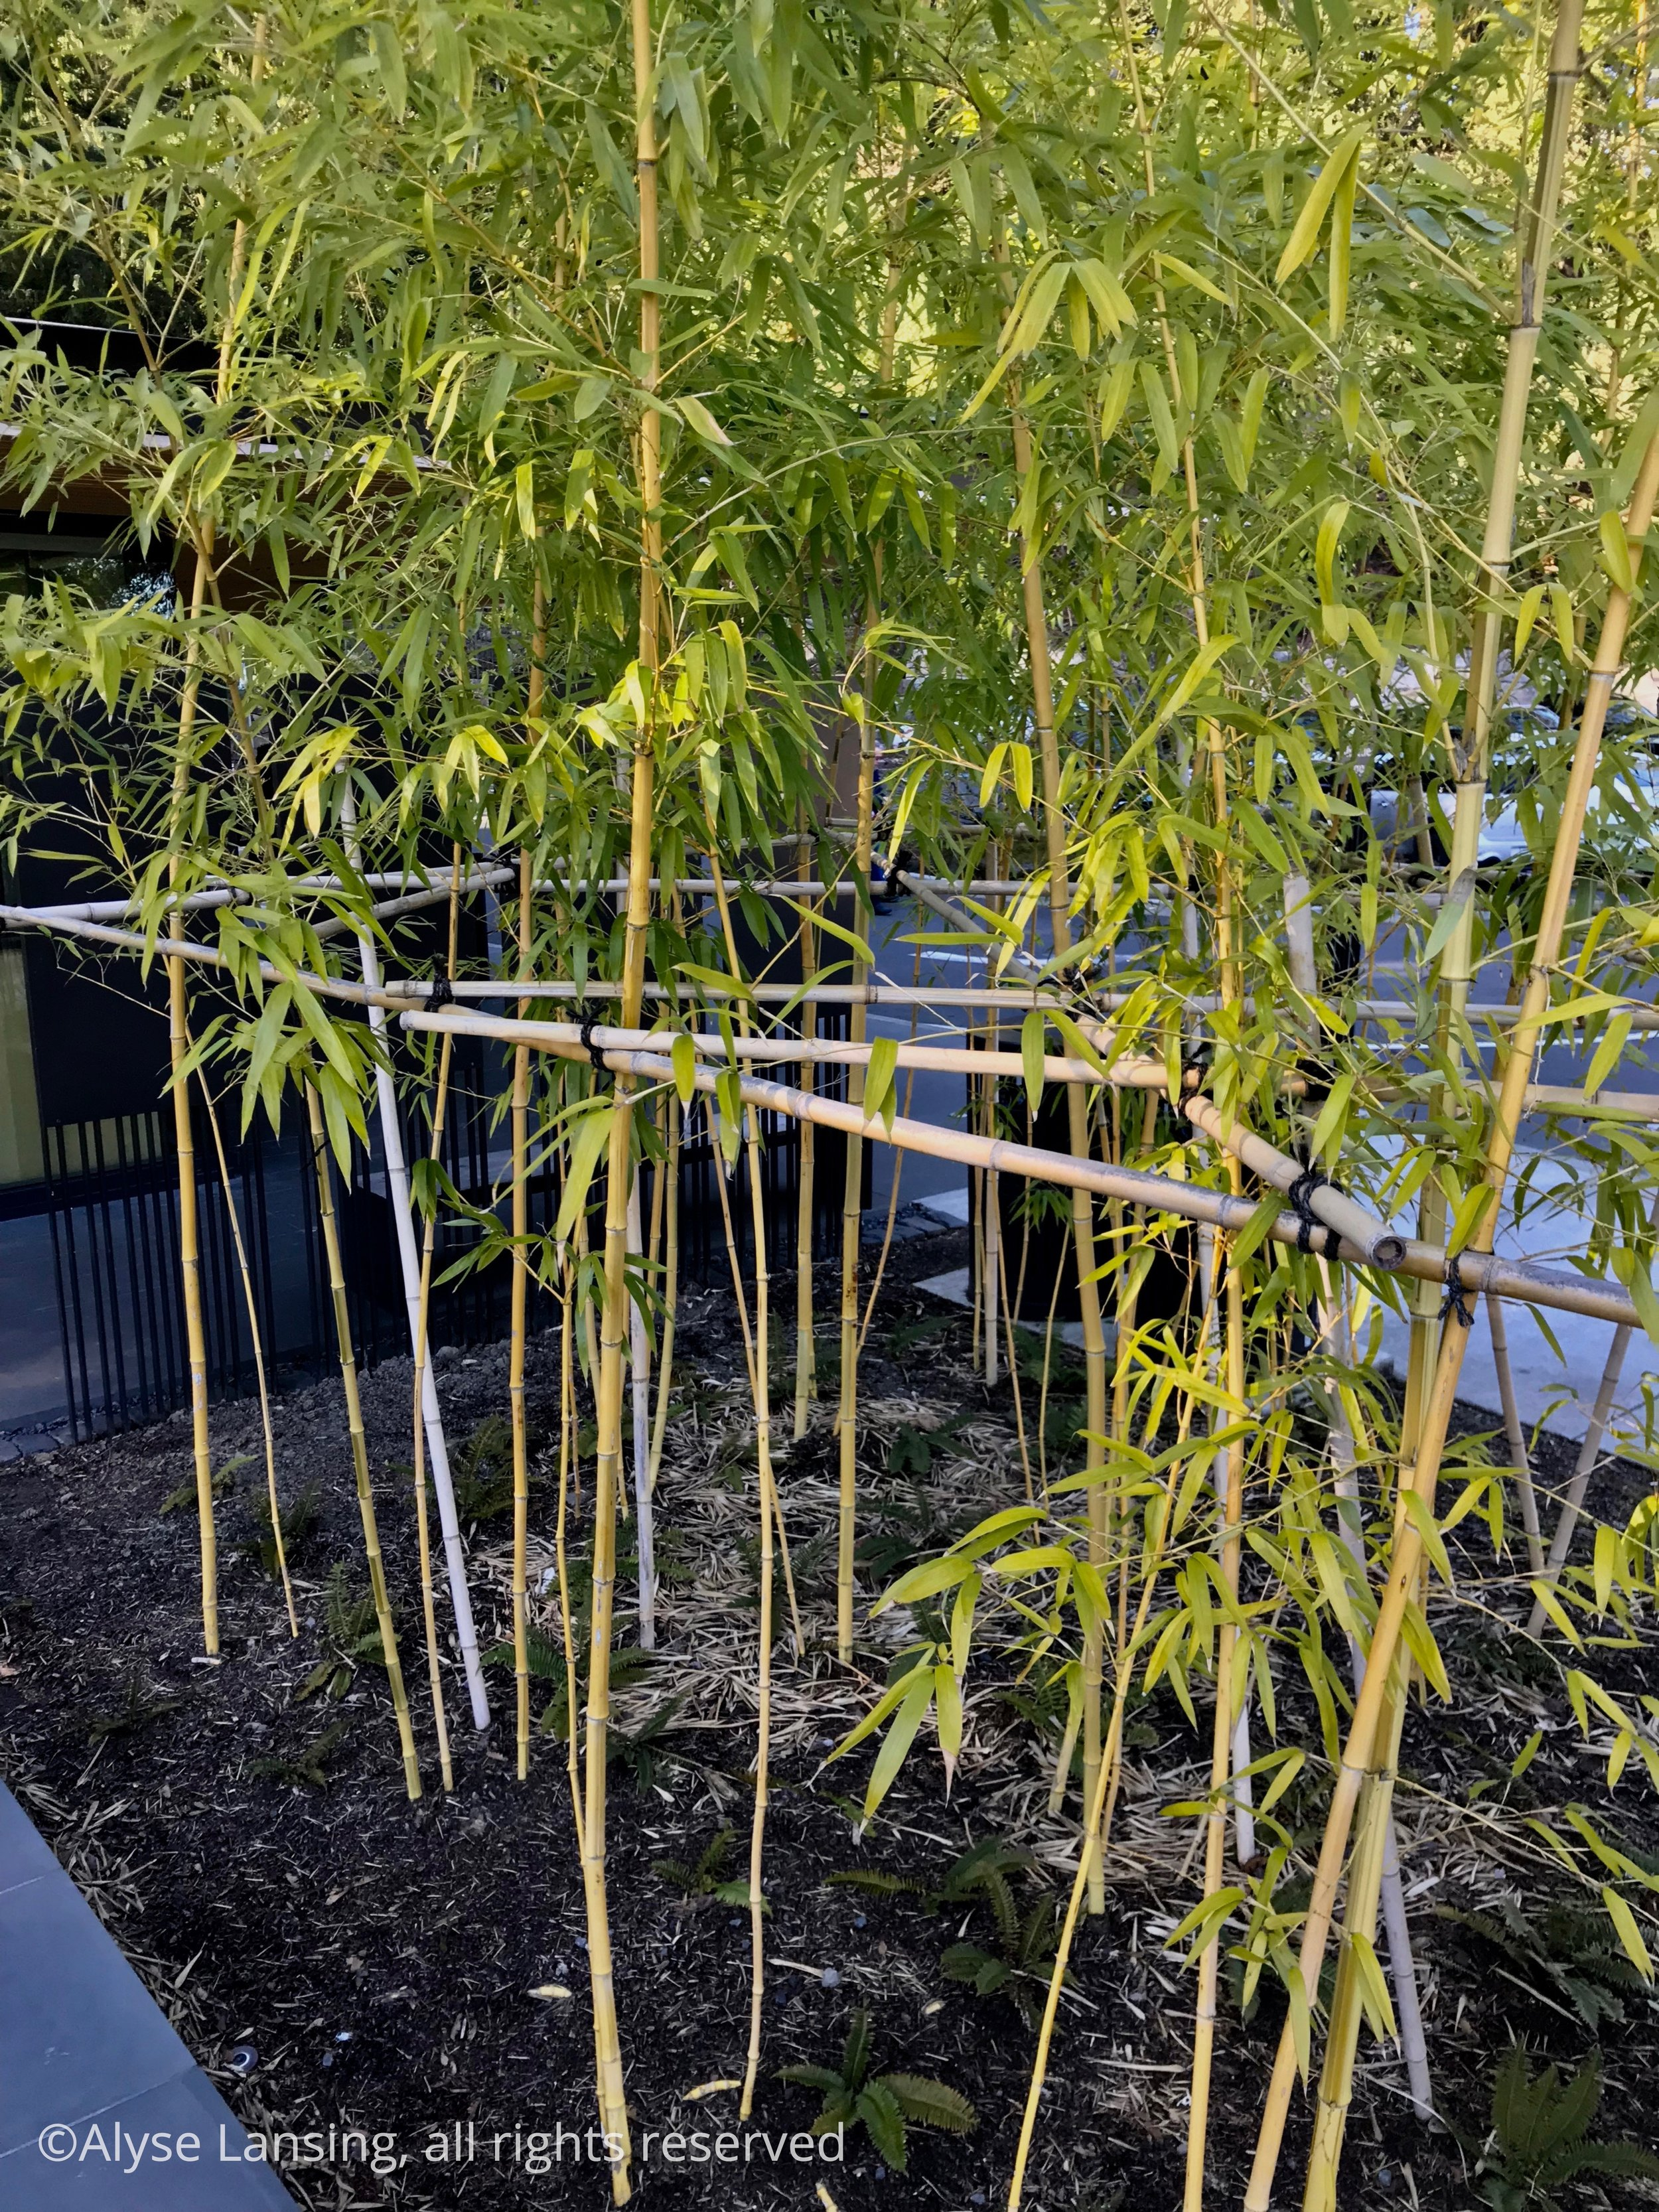 """I admire the bamboo staking in this garden, artistically and subtly executed. They situate the horizontal pieces exactly at the average person's eye level, so that most of the gridwork that could distract the eye is """"hidden.""""  I had to stand up on the water feature ledge to get this photo, and even then, it was hard to distinguish the lashing and how it's done. I love the cleverness, and the thought that was obviously put behind that detail."""